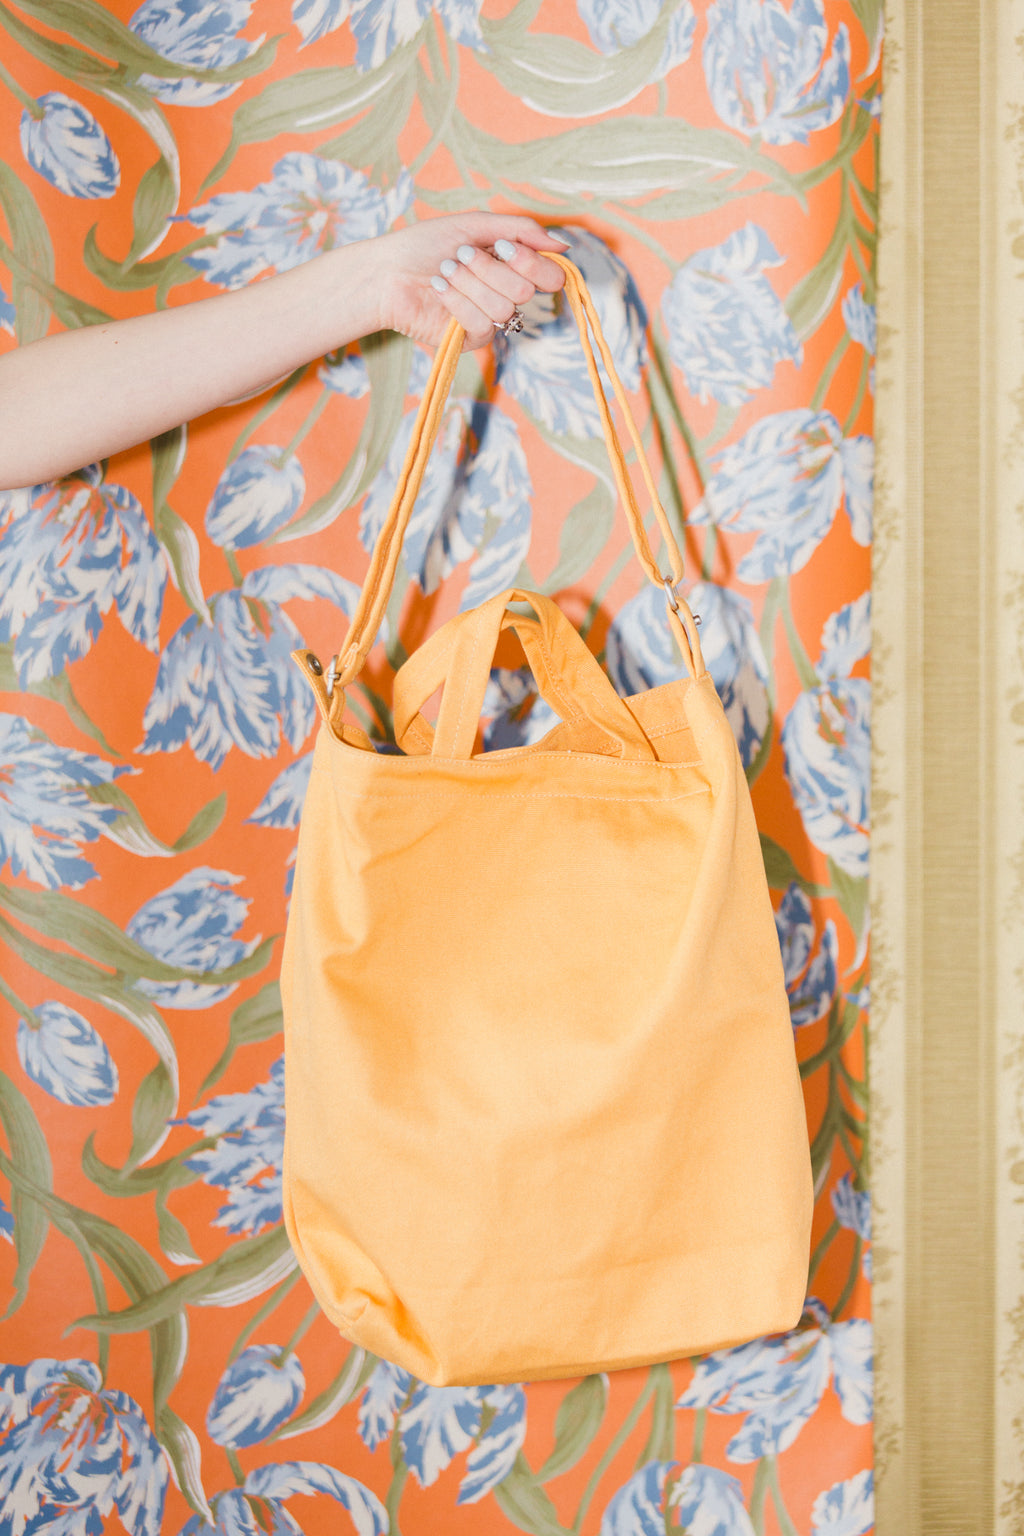 Duck Bag in Apricot